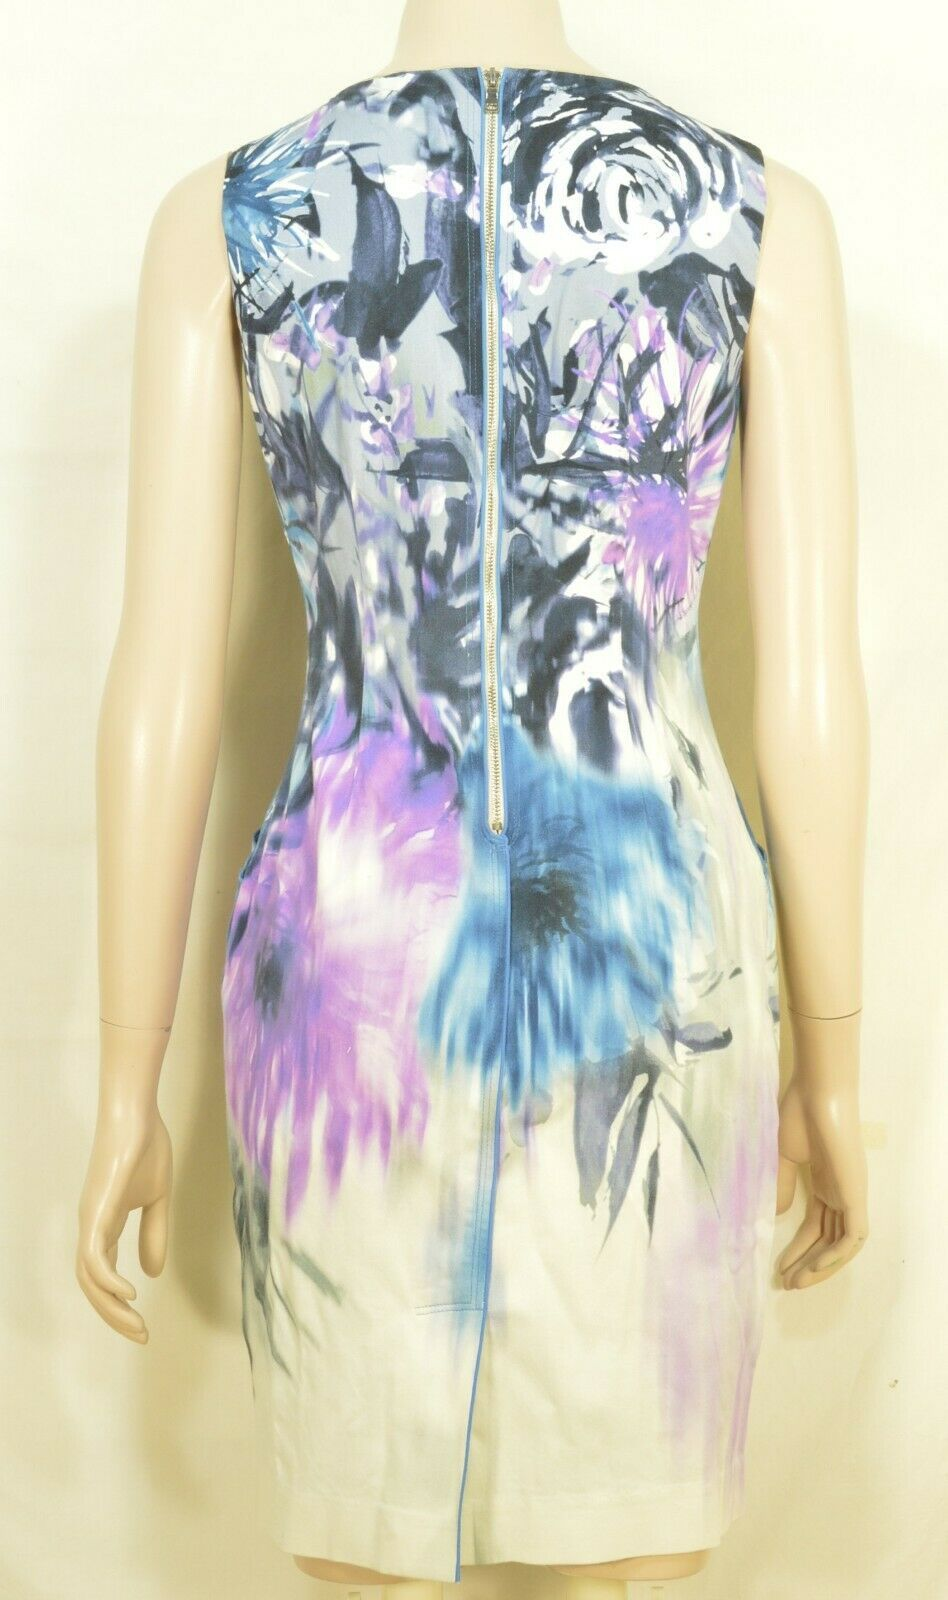 Elie Tahari dress SZ 2 LOT of 2  1 turquoise 1 floral sheath career chic lined image 10